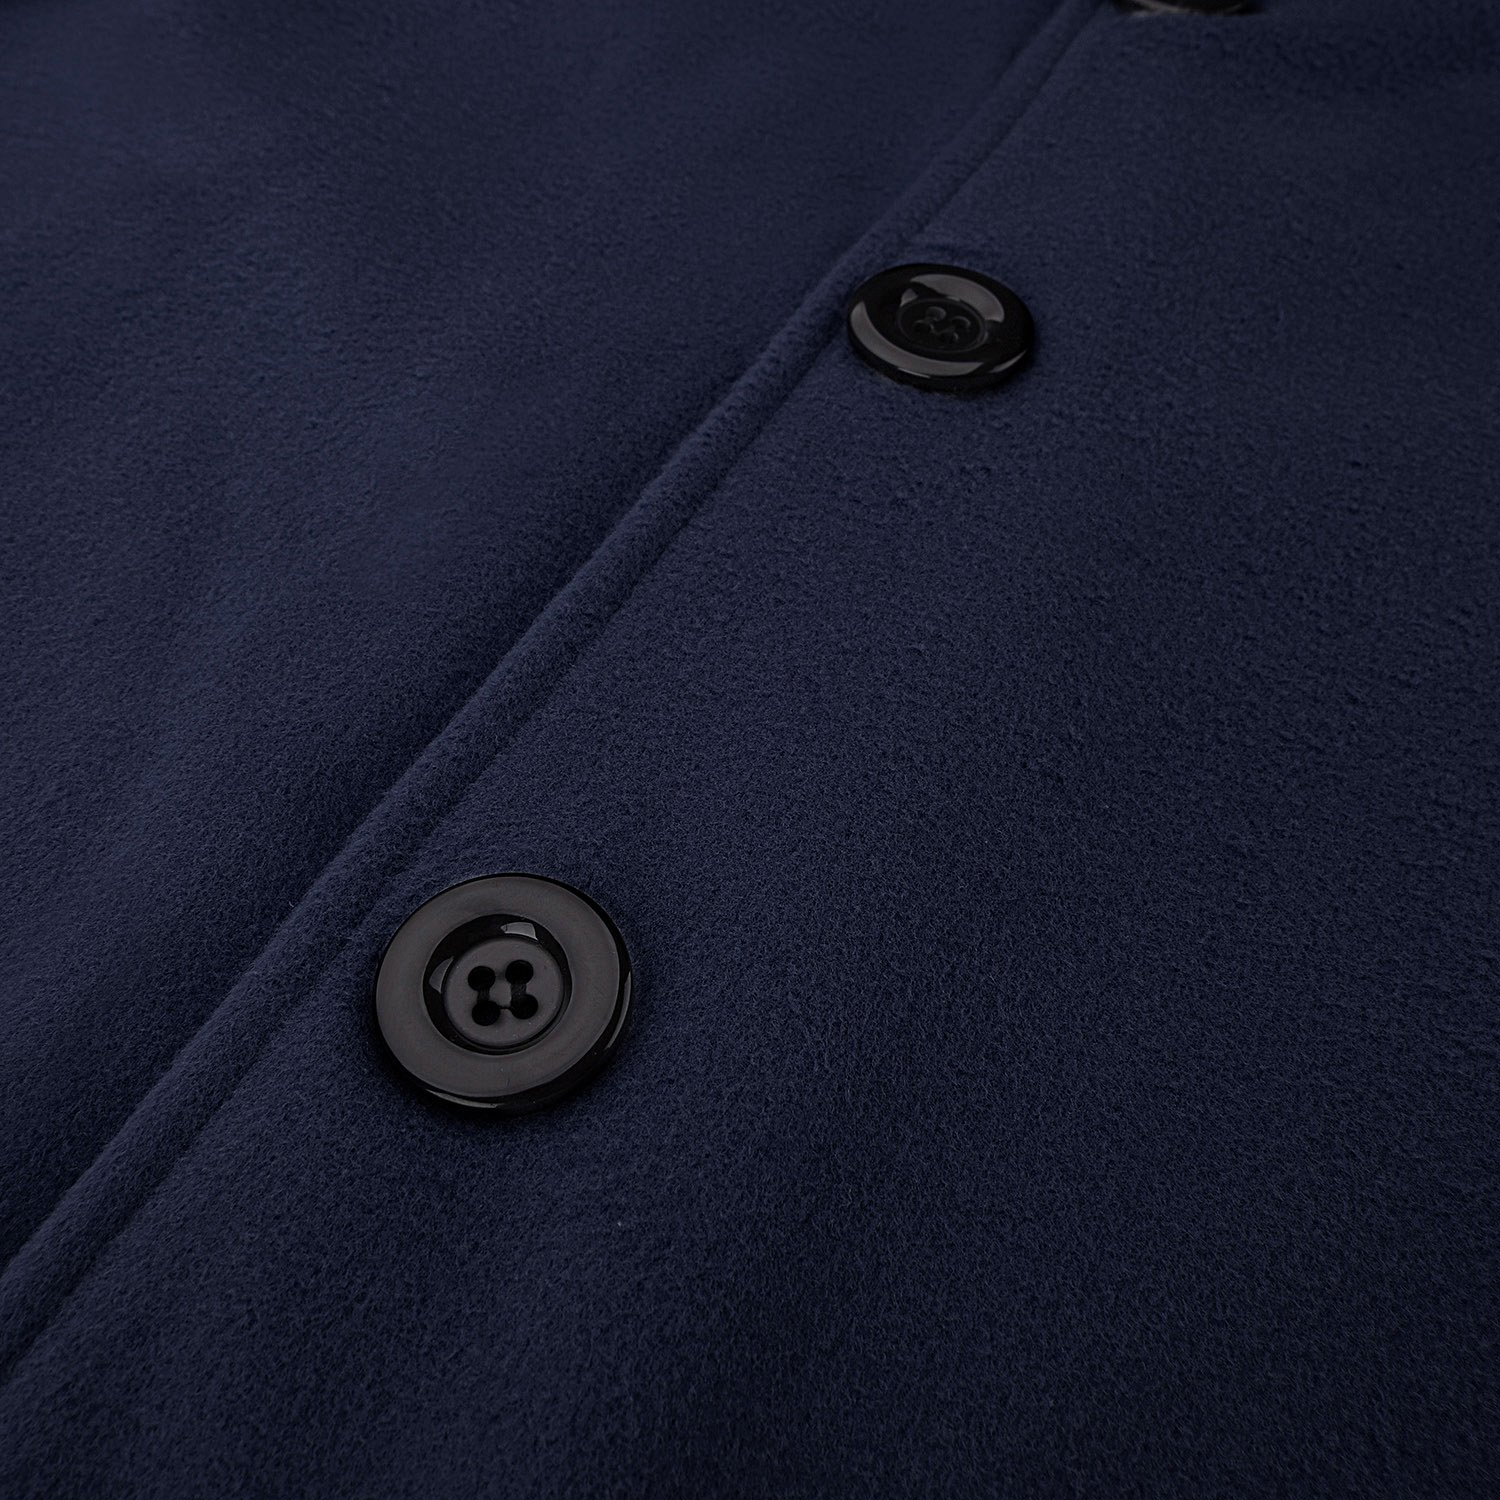 Hasuit Men's Single Breasted Notched Lapel Coat by Hasuit (Image #7)